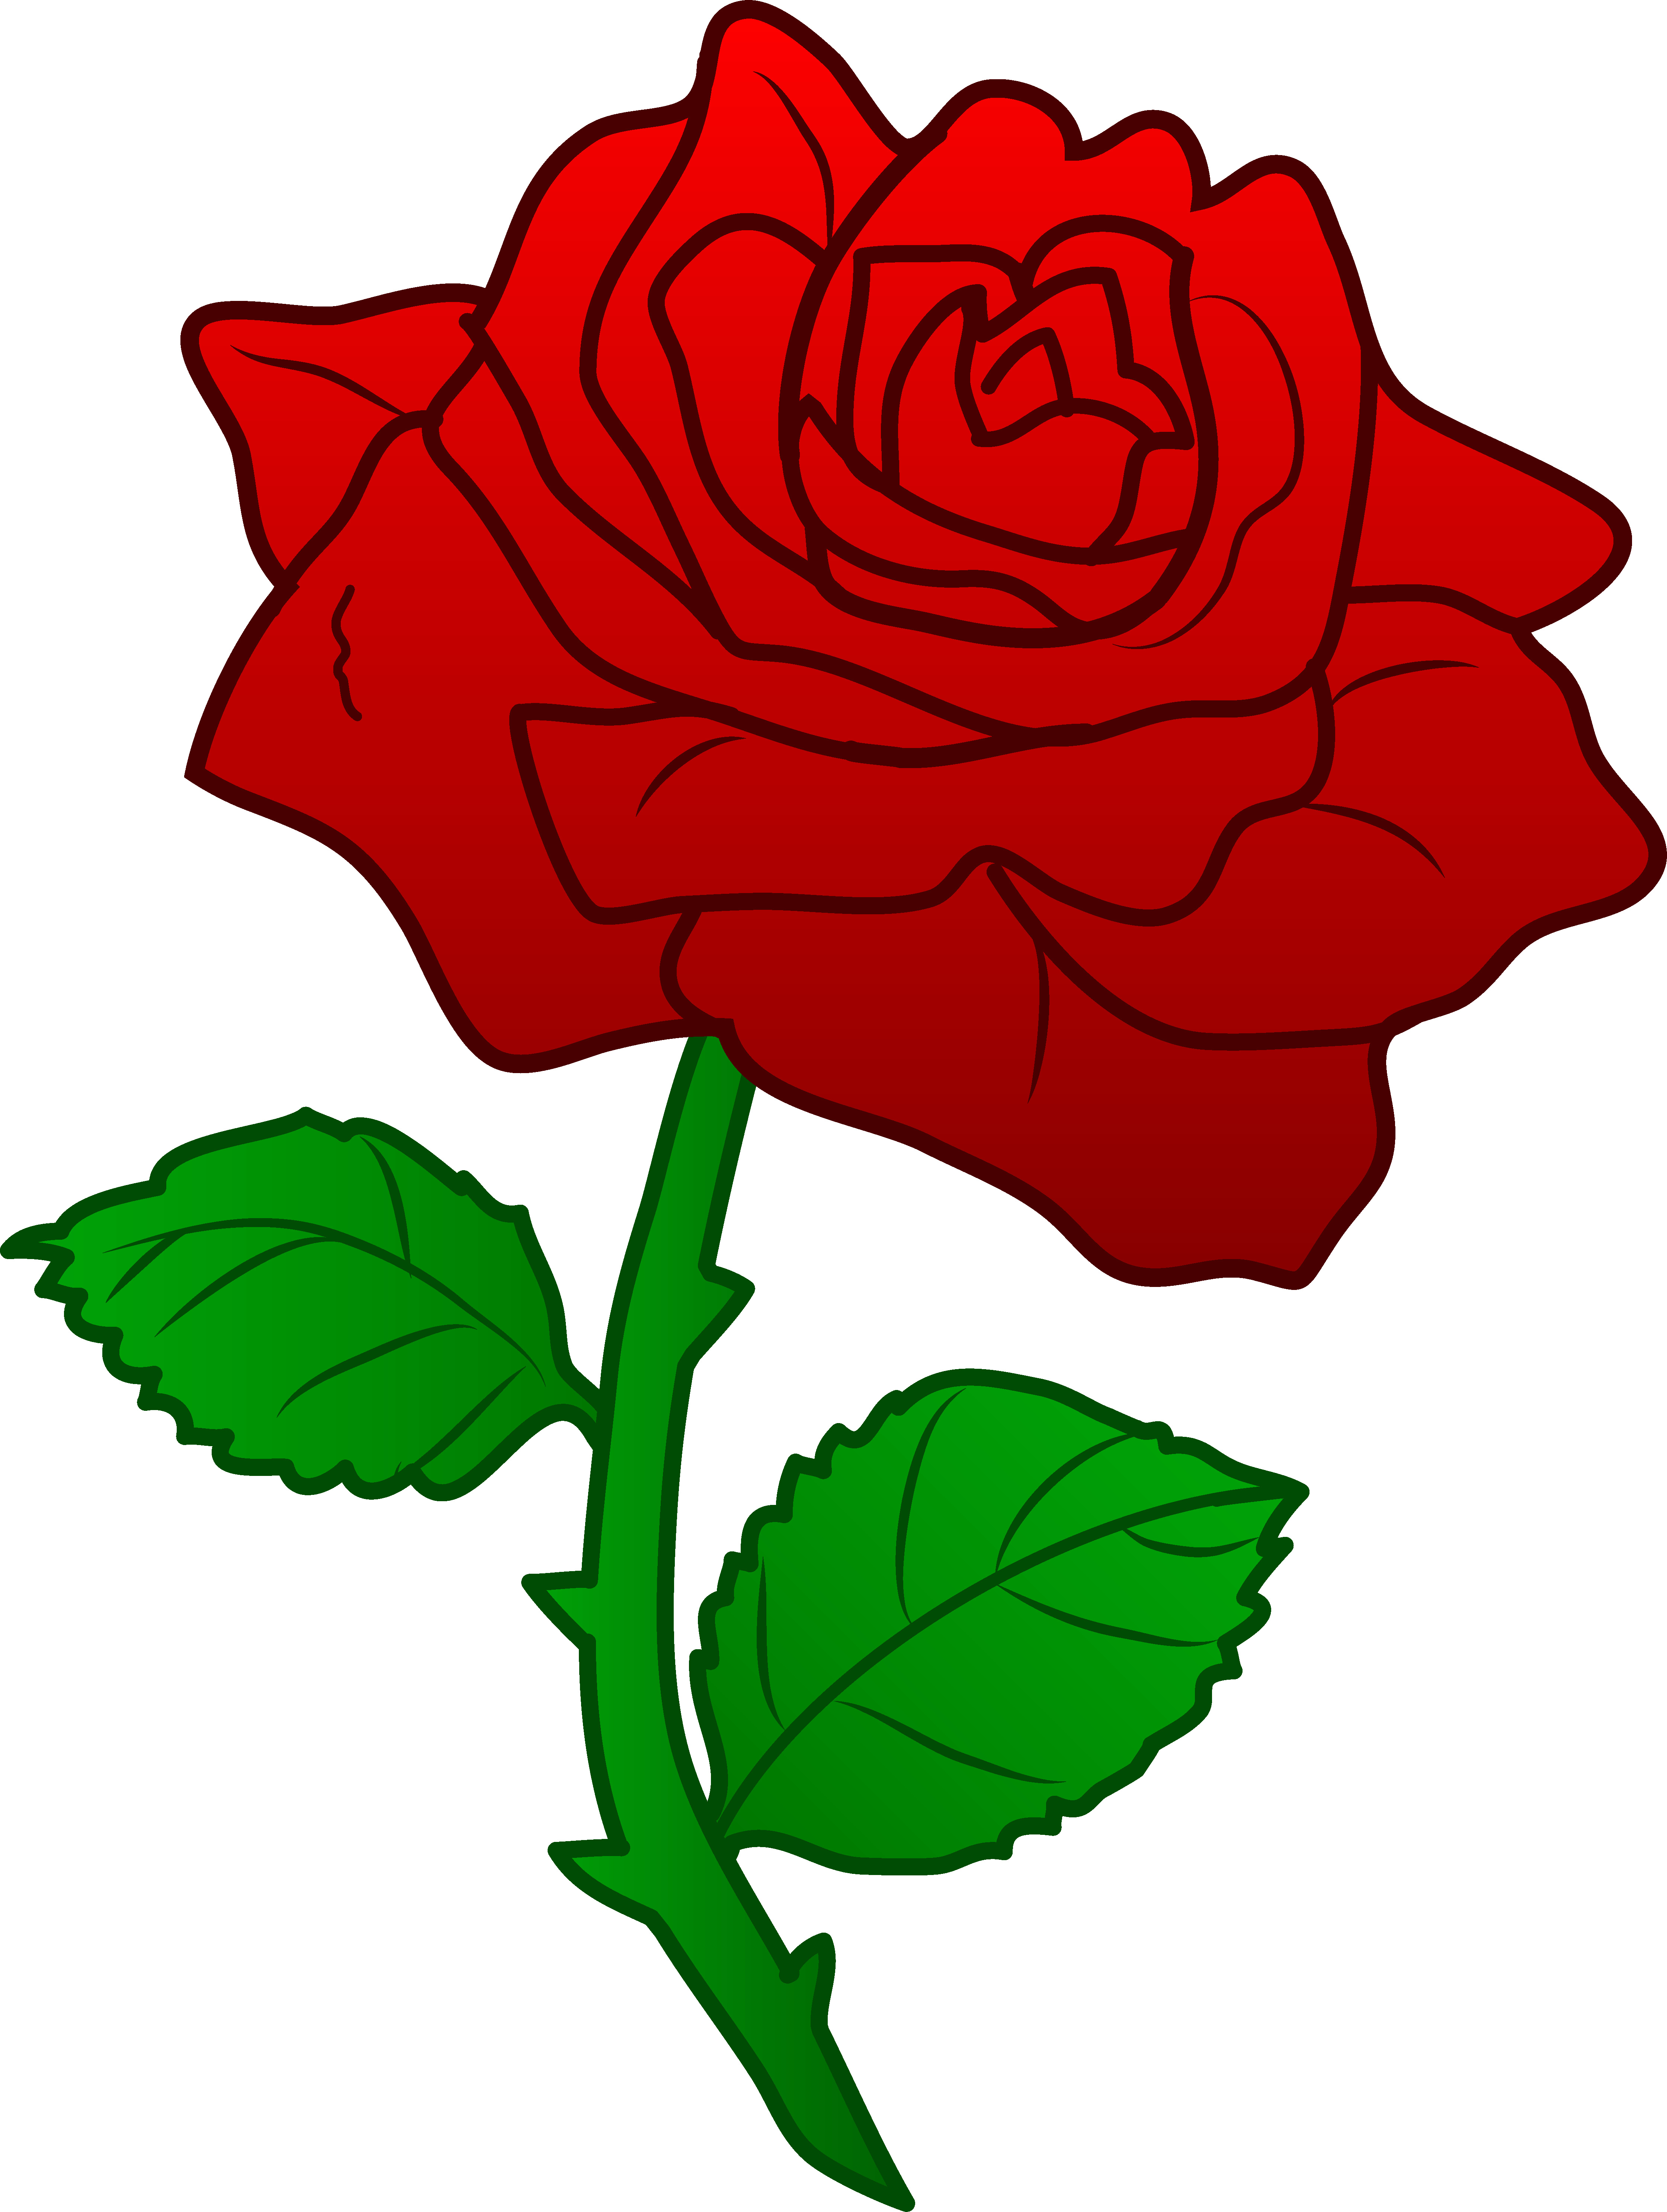 4481x5947 Arts Rose Clipart Outline Very Good Knumathise Rose Drawing